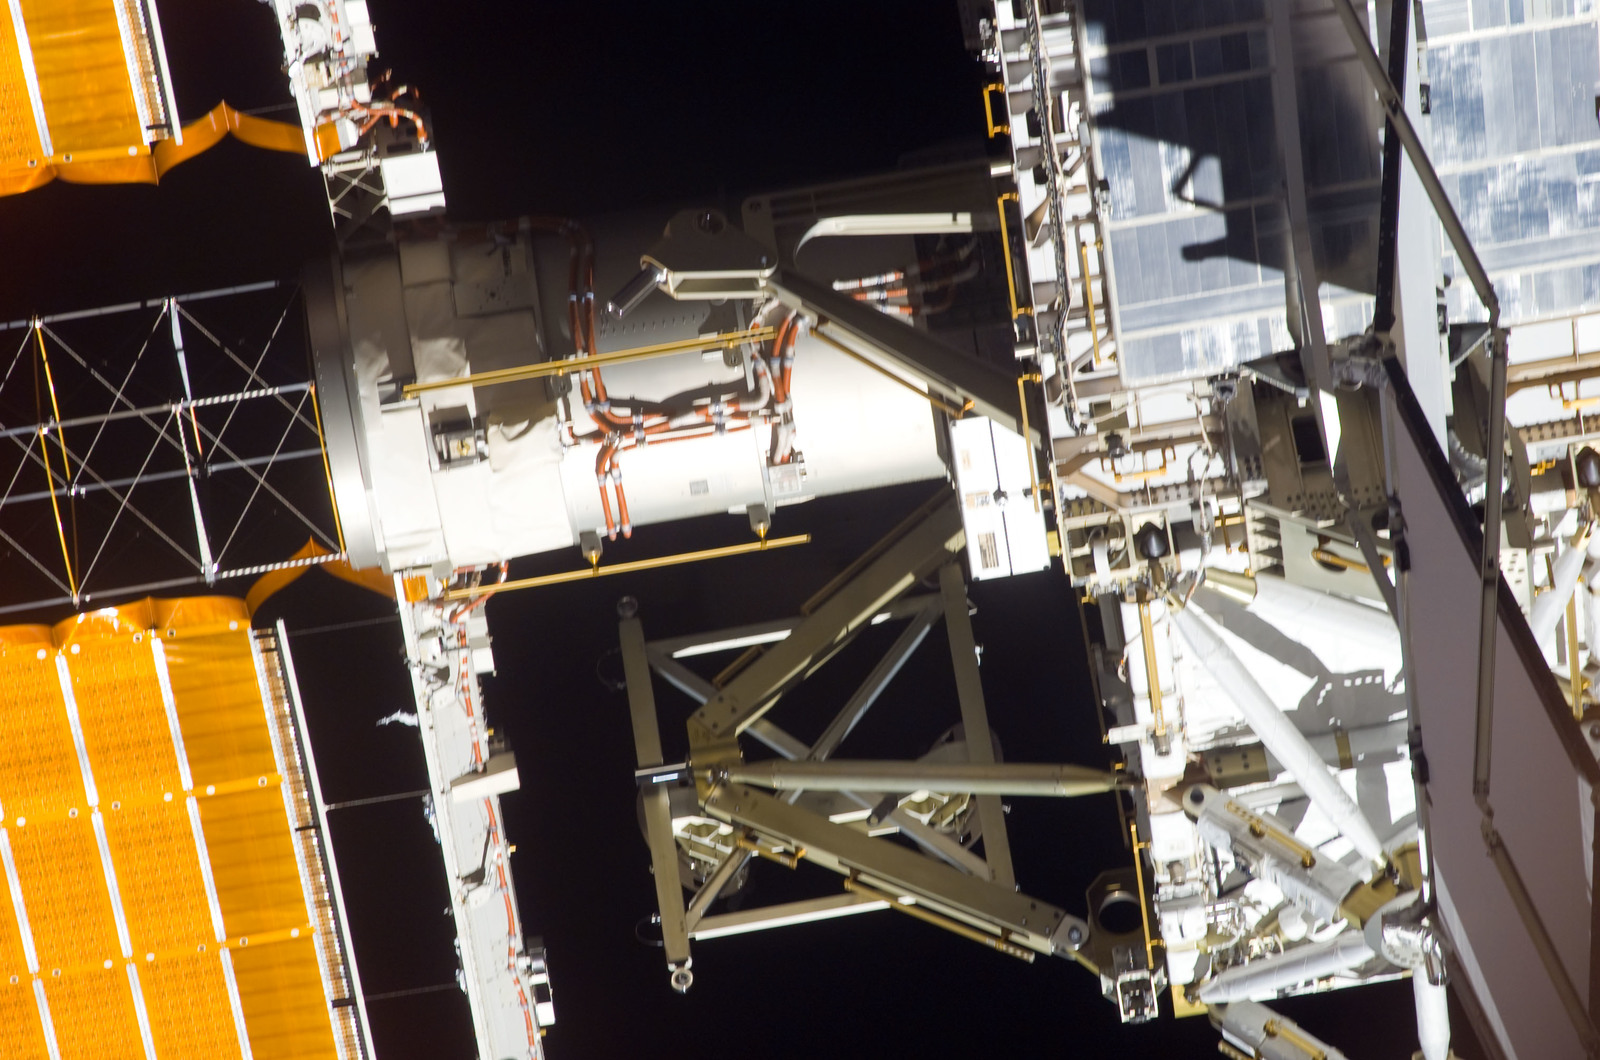 S116E07524 - STS-116 - P4 and P5 Trusses taken during STS-116